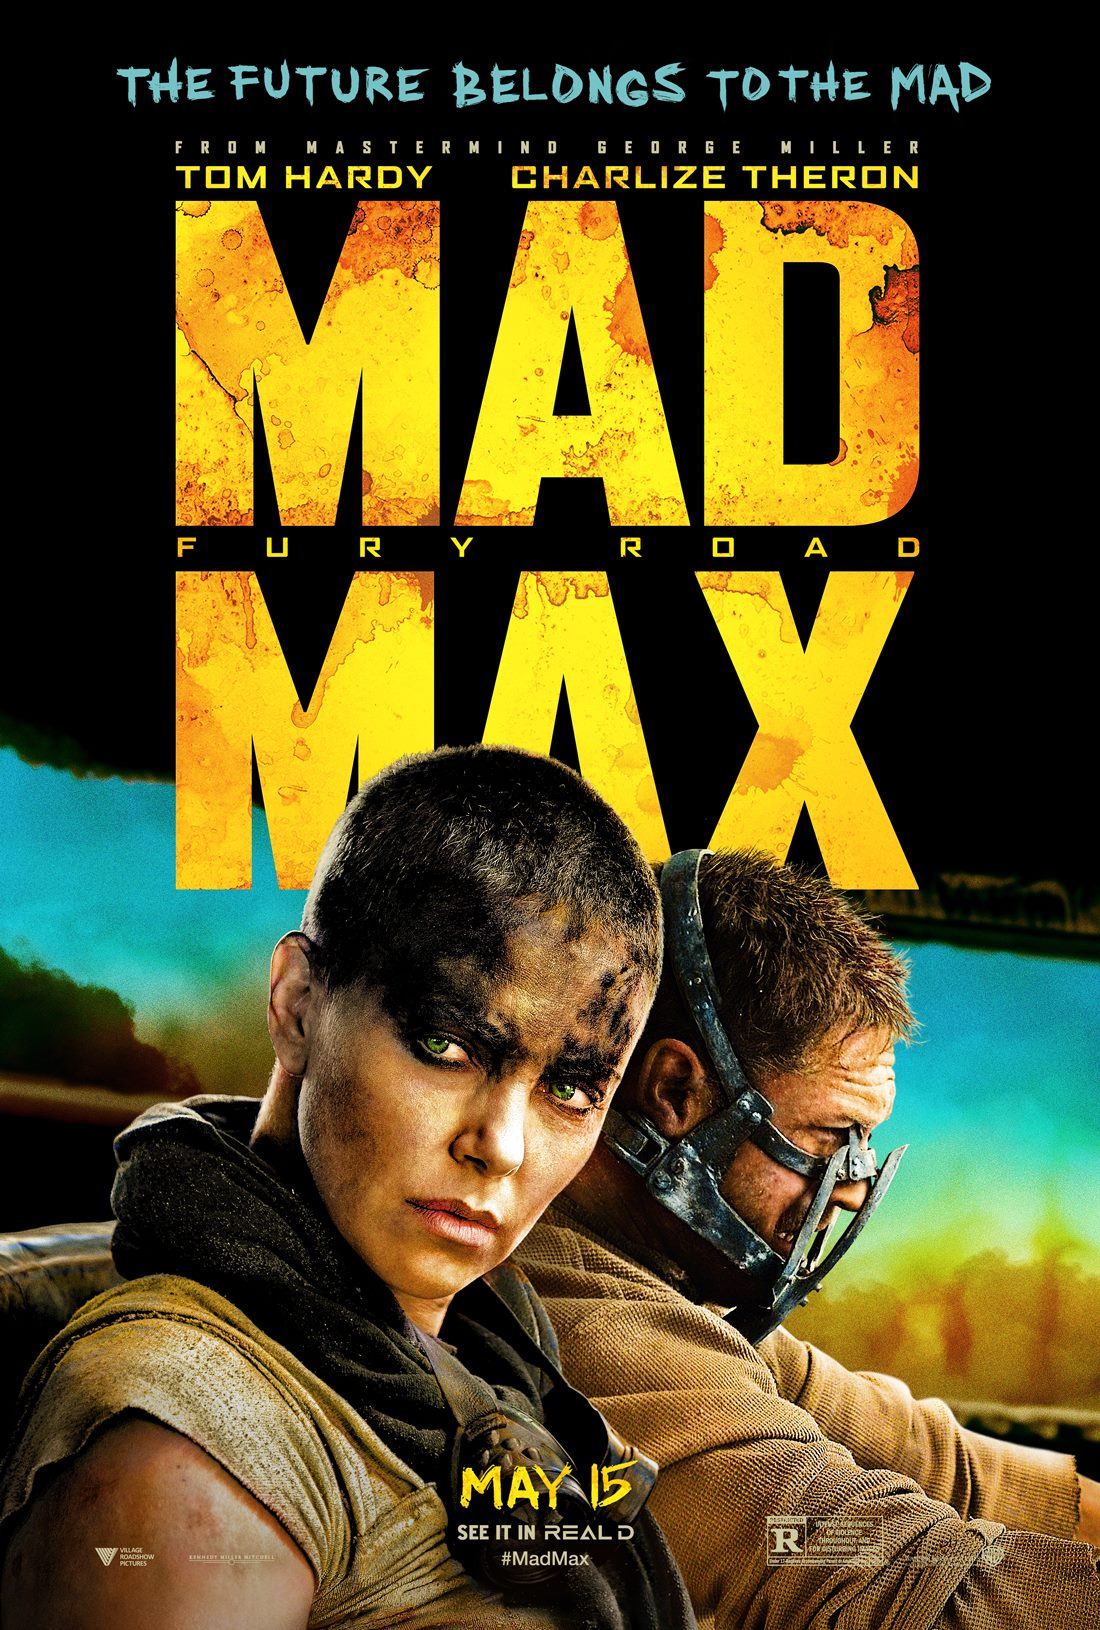 http://www.scifiworld.es/images/galerias/films/Mad%20Max%20-%20Fury%20Road/MadMax_FuryRoad_00f.jpg